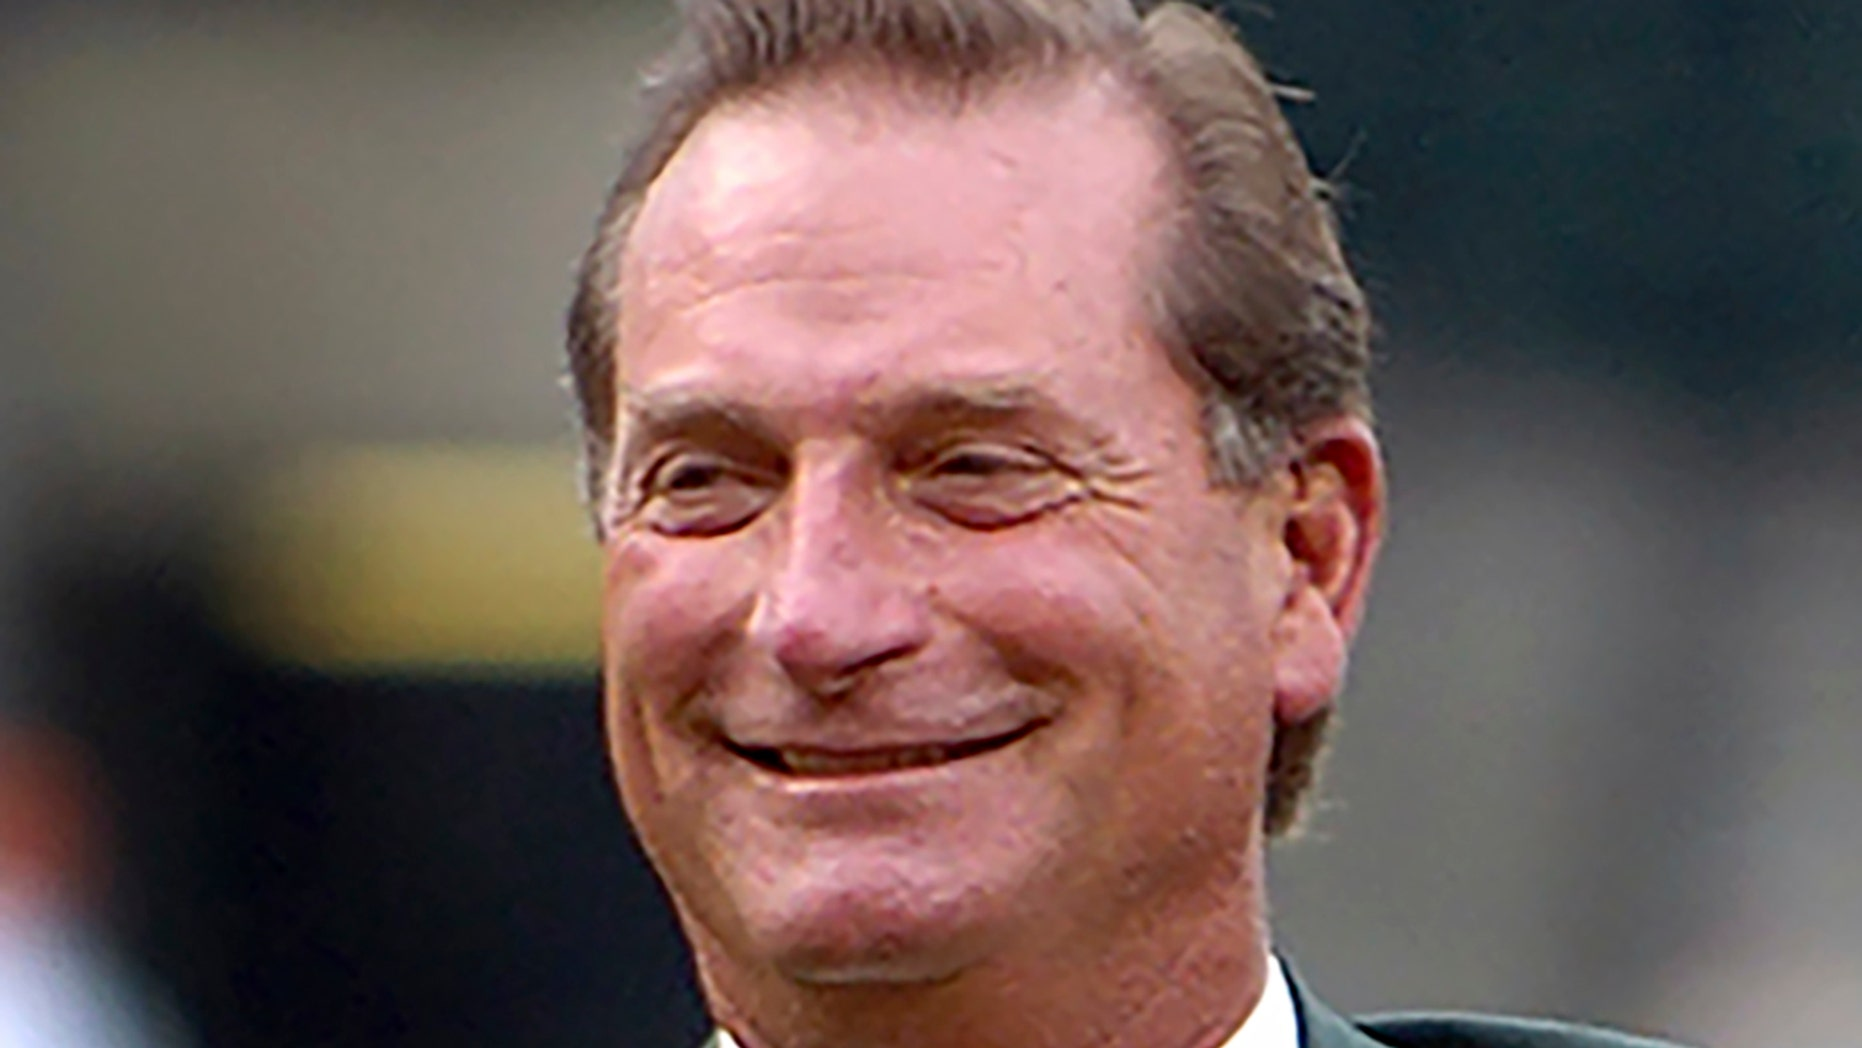 FILE - In this Aug. 26, 2006, file photo, former Baltimore Orioles baseball player Doug DeCinces smiles after being inducted into the Orioles Hall of Fame during a ceremony in Baltimore. DeCinces has been sentenced to eight months of home detention and ordered to pay a $10,000 fine for his role in an insider-trading scheme. (AP Photo/Gail Burton, File)